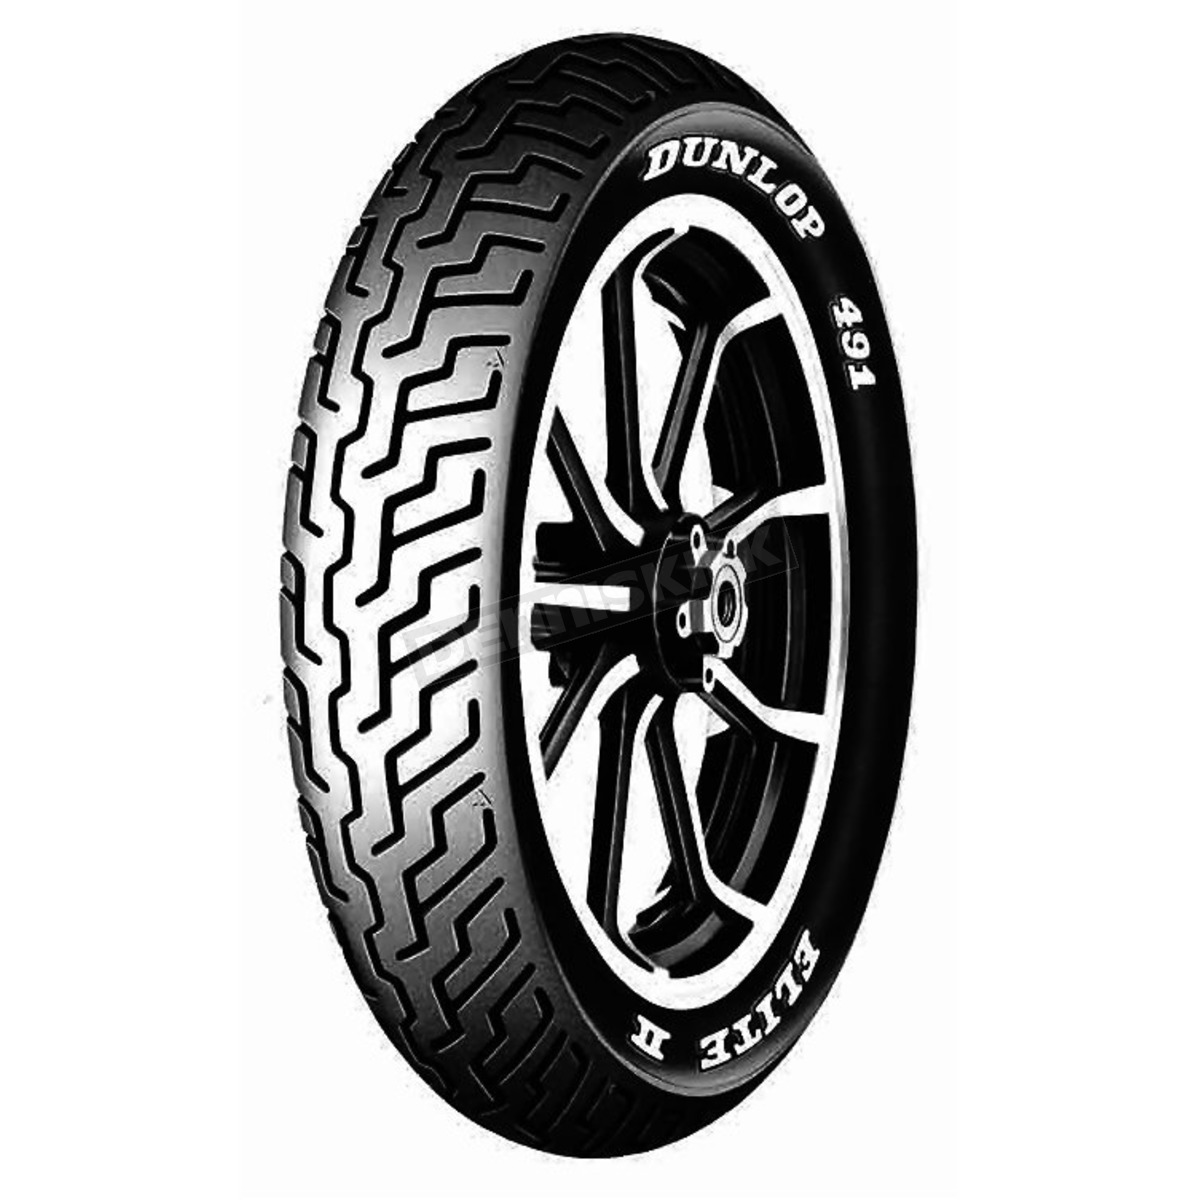 Dunlop front k491 elite ii touring mm90h 19 raised white for Dunlop white letter motorcycle tires